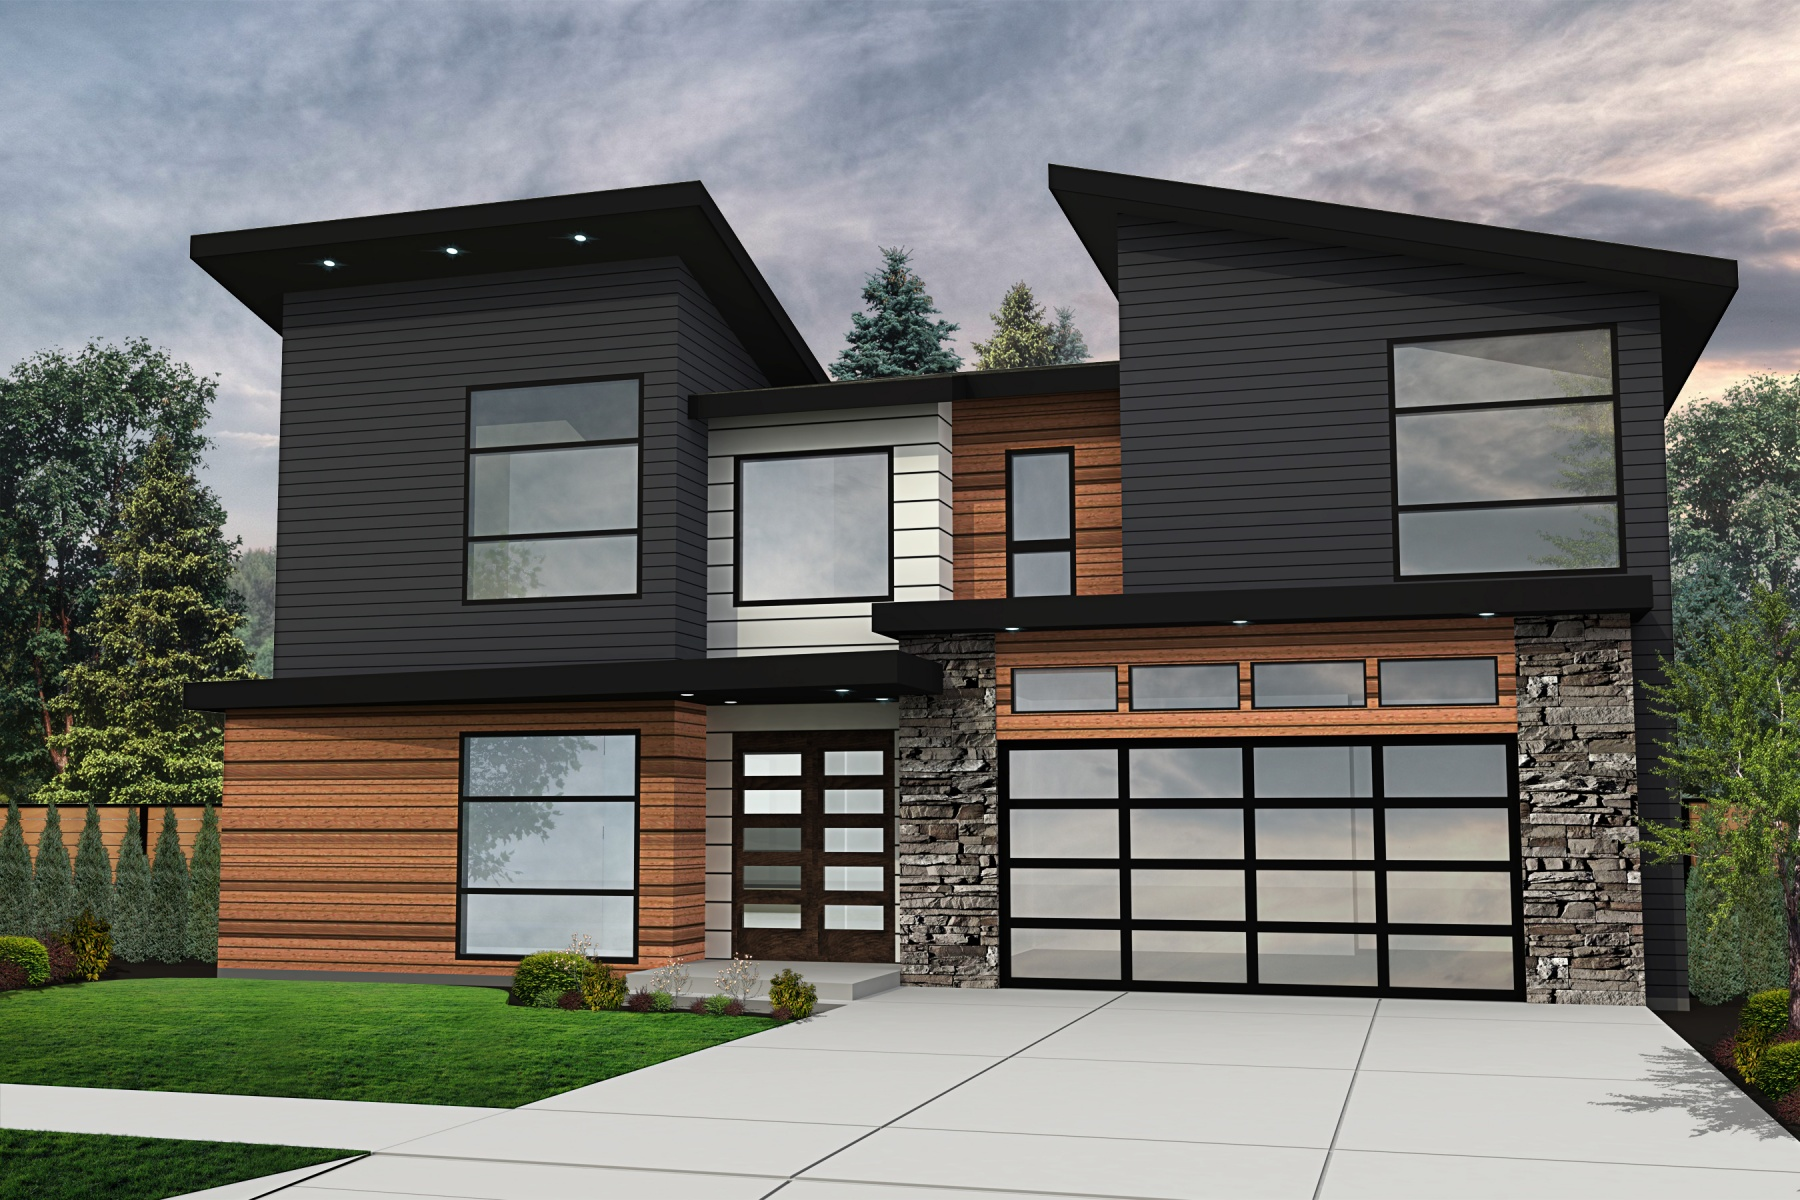 Single Family Home for Sale at New Contemporary Development 4709 N ADAMS St Camas, Washington 98607 United States